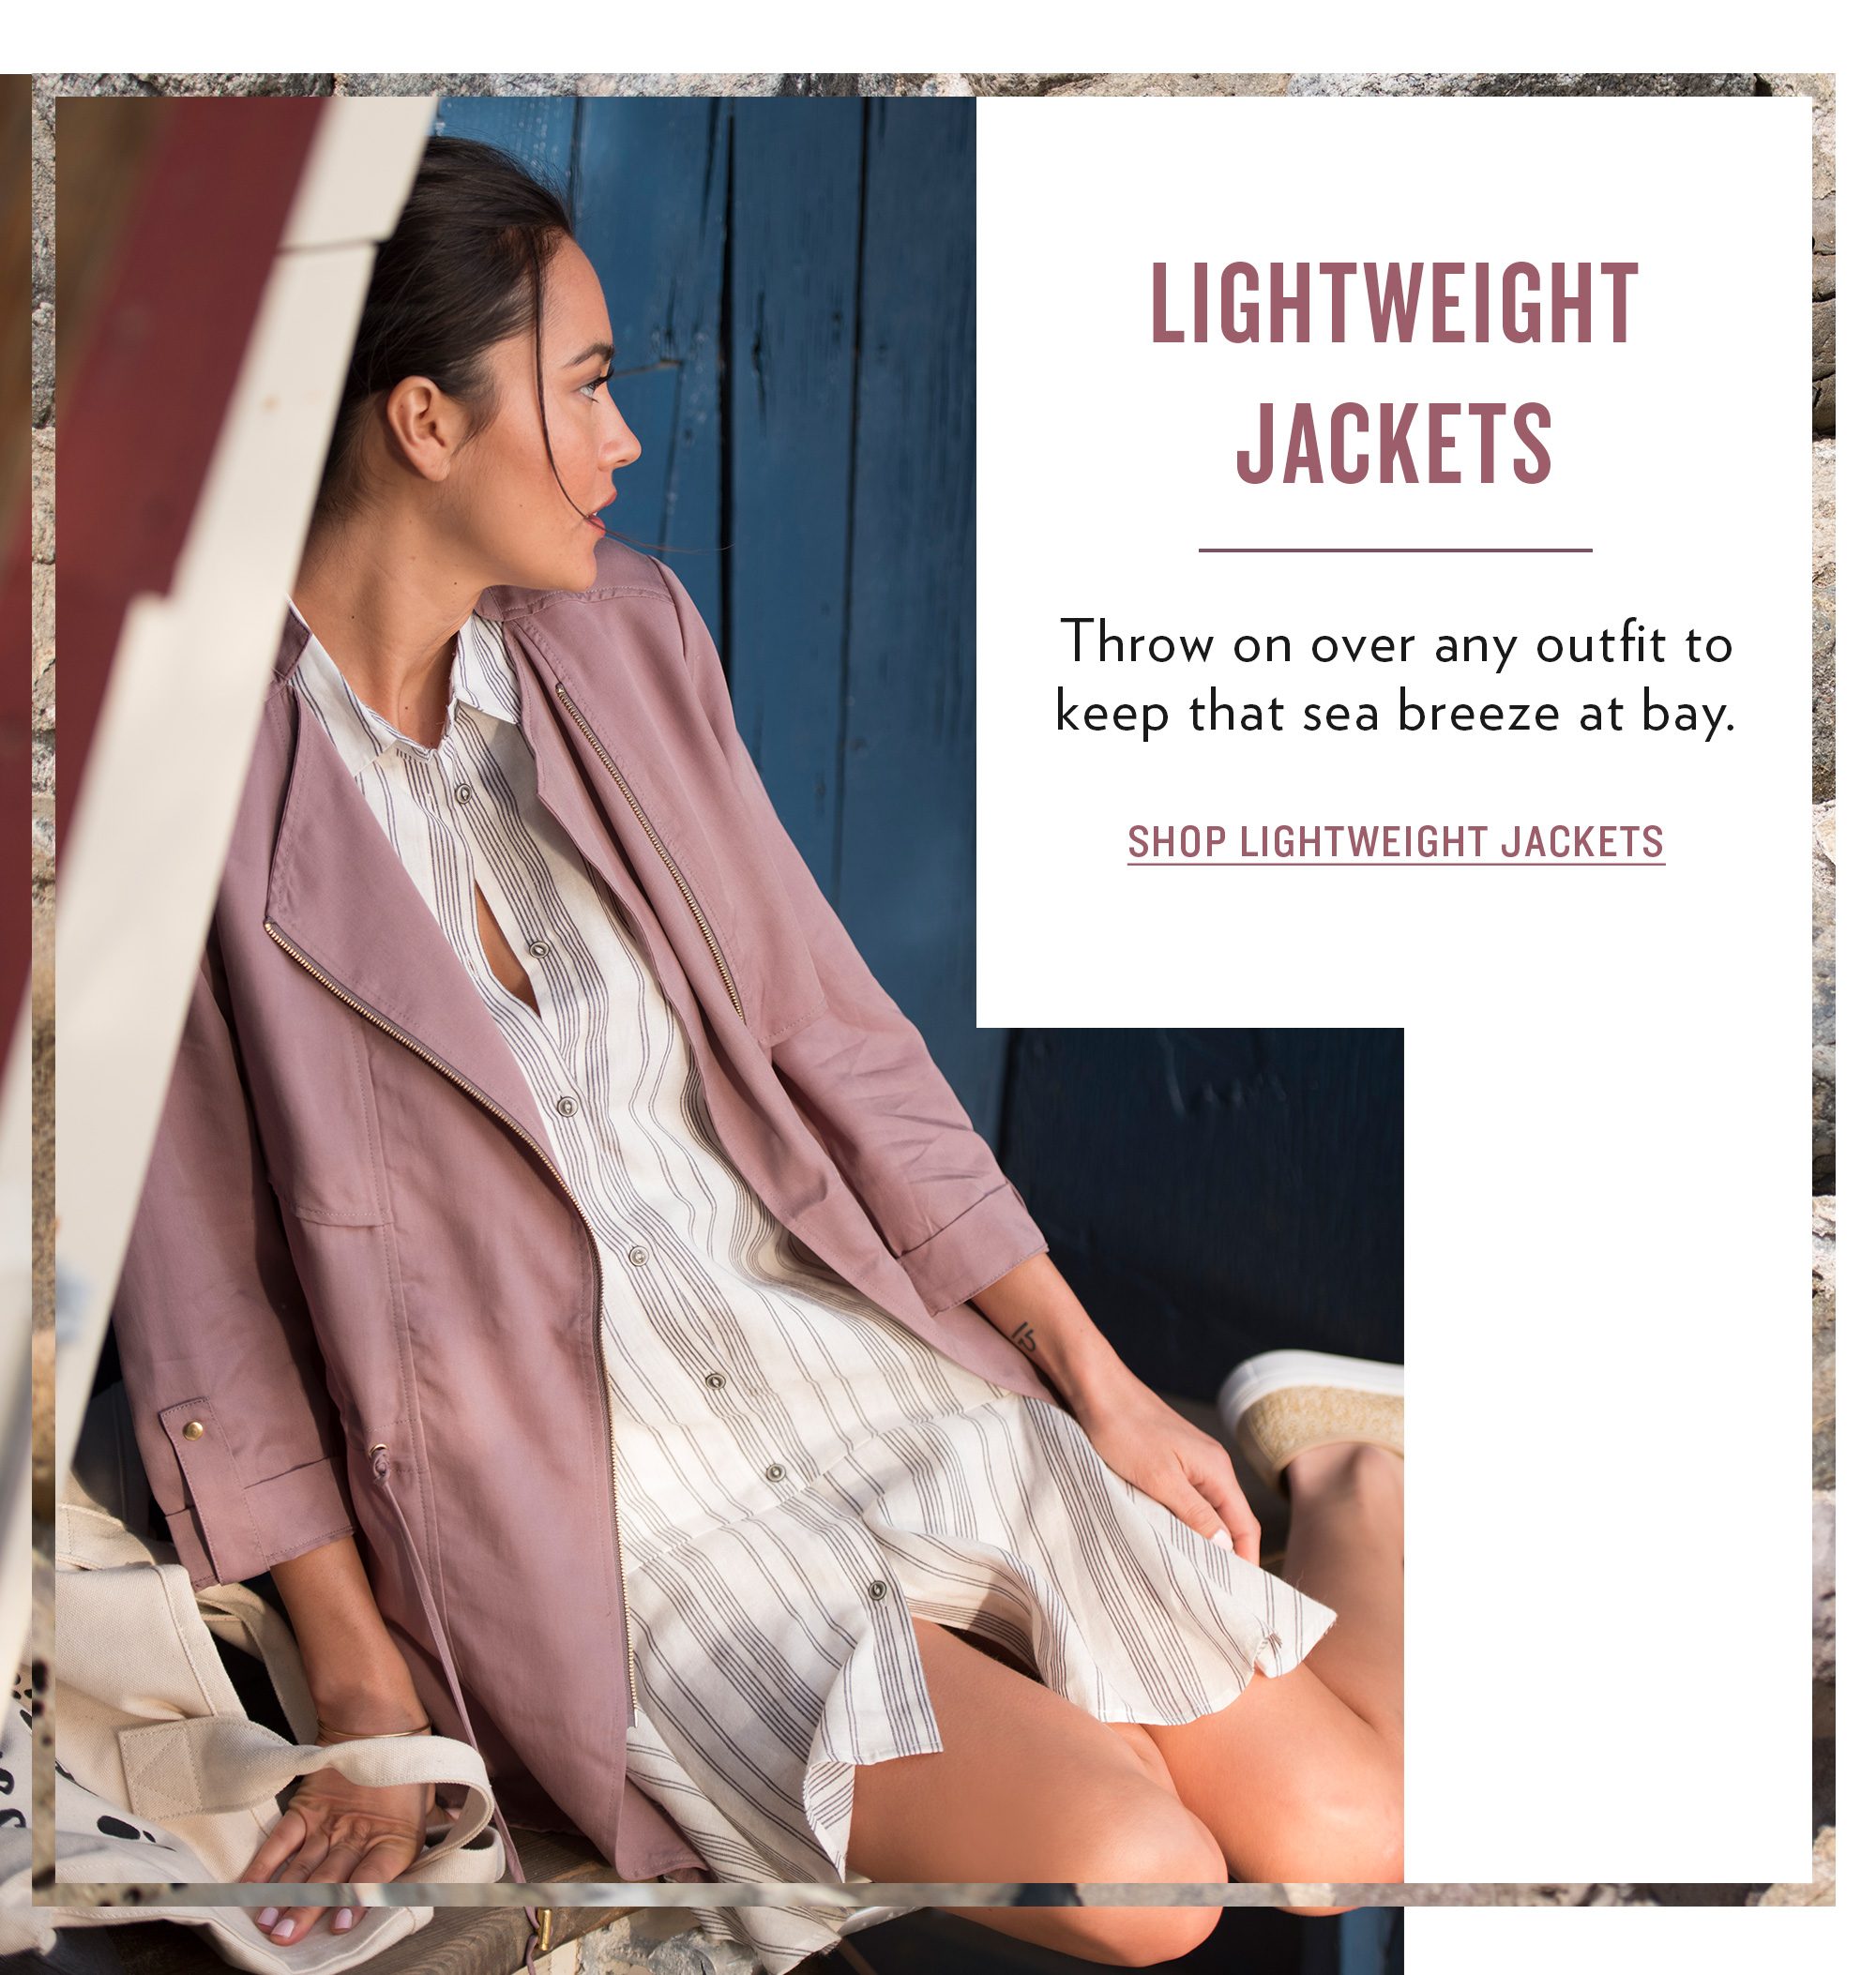 Shop Lightweight Jackets